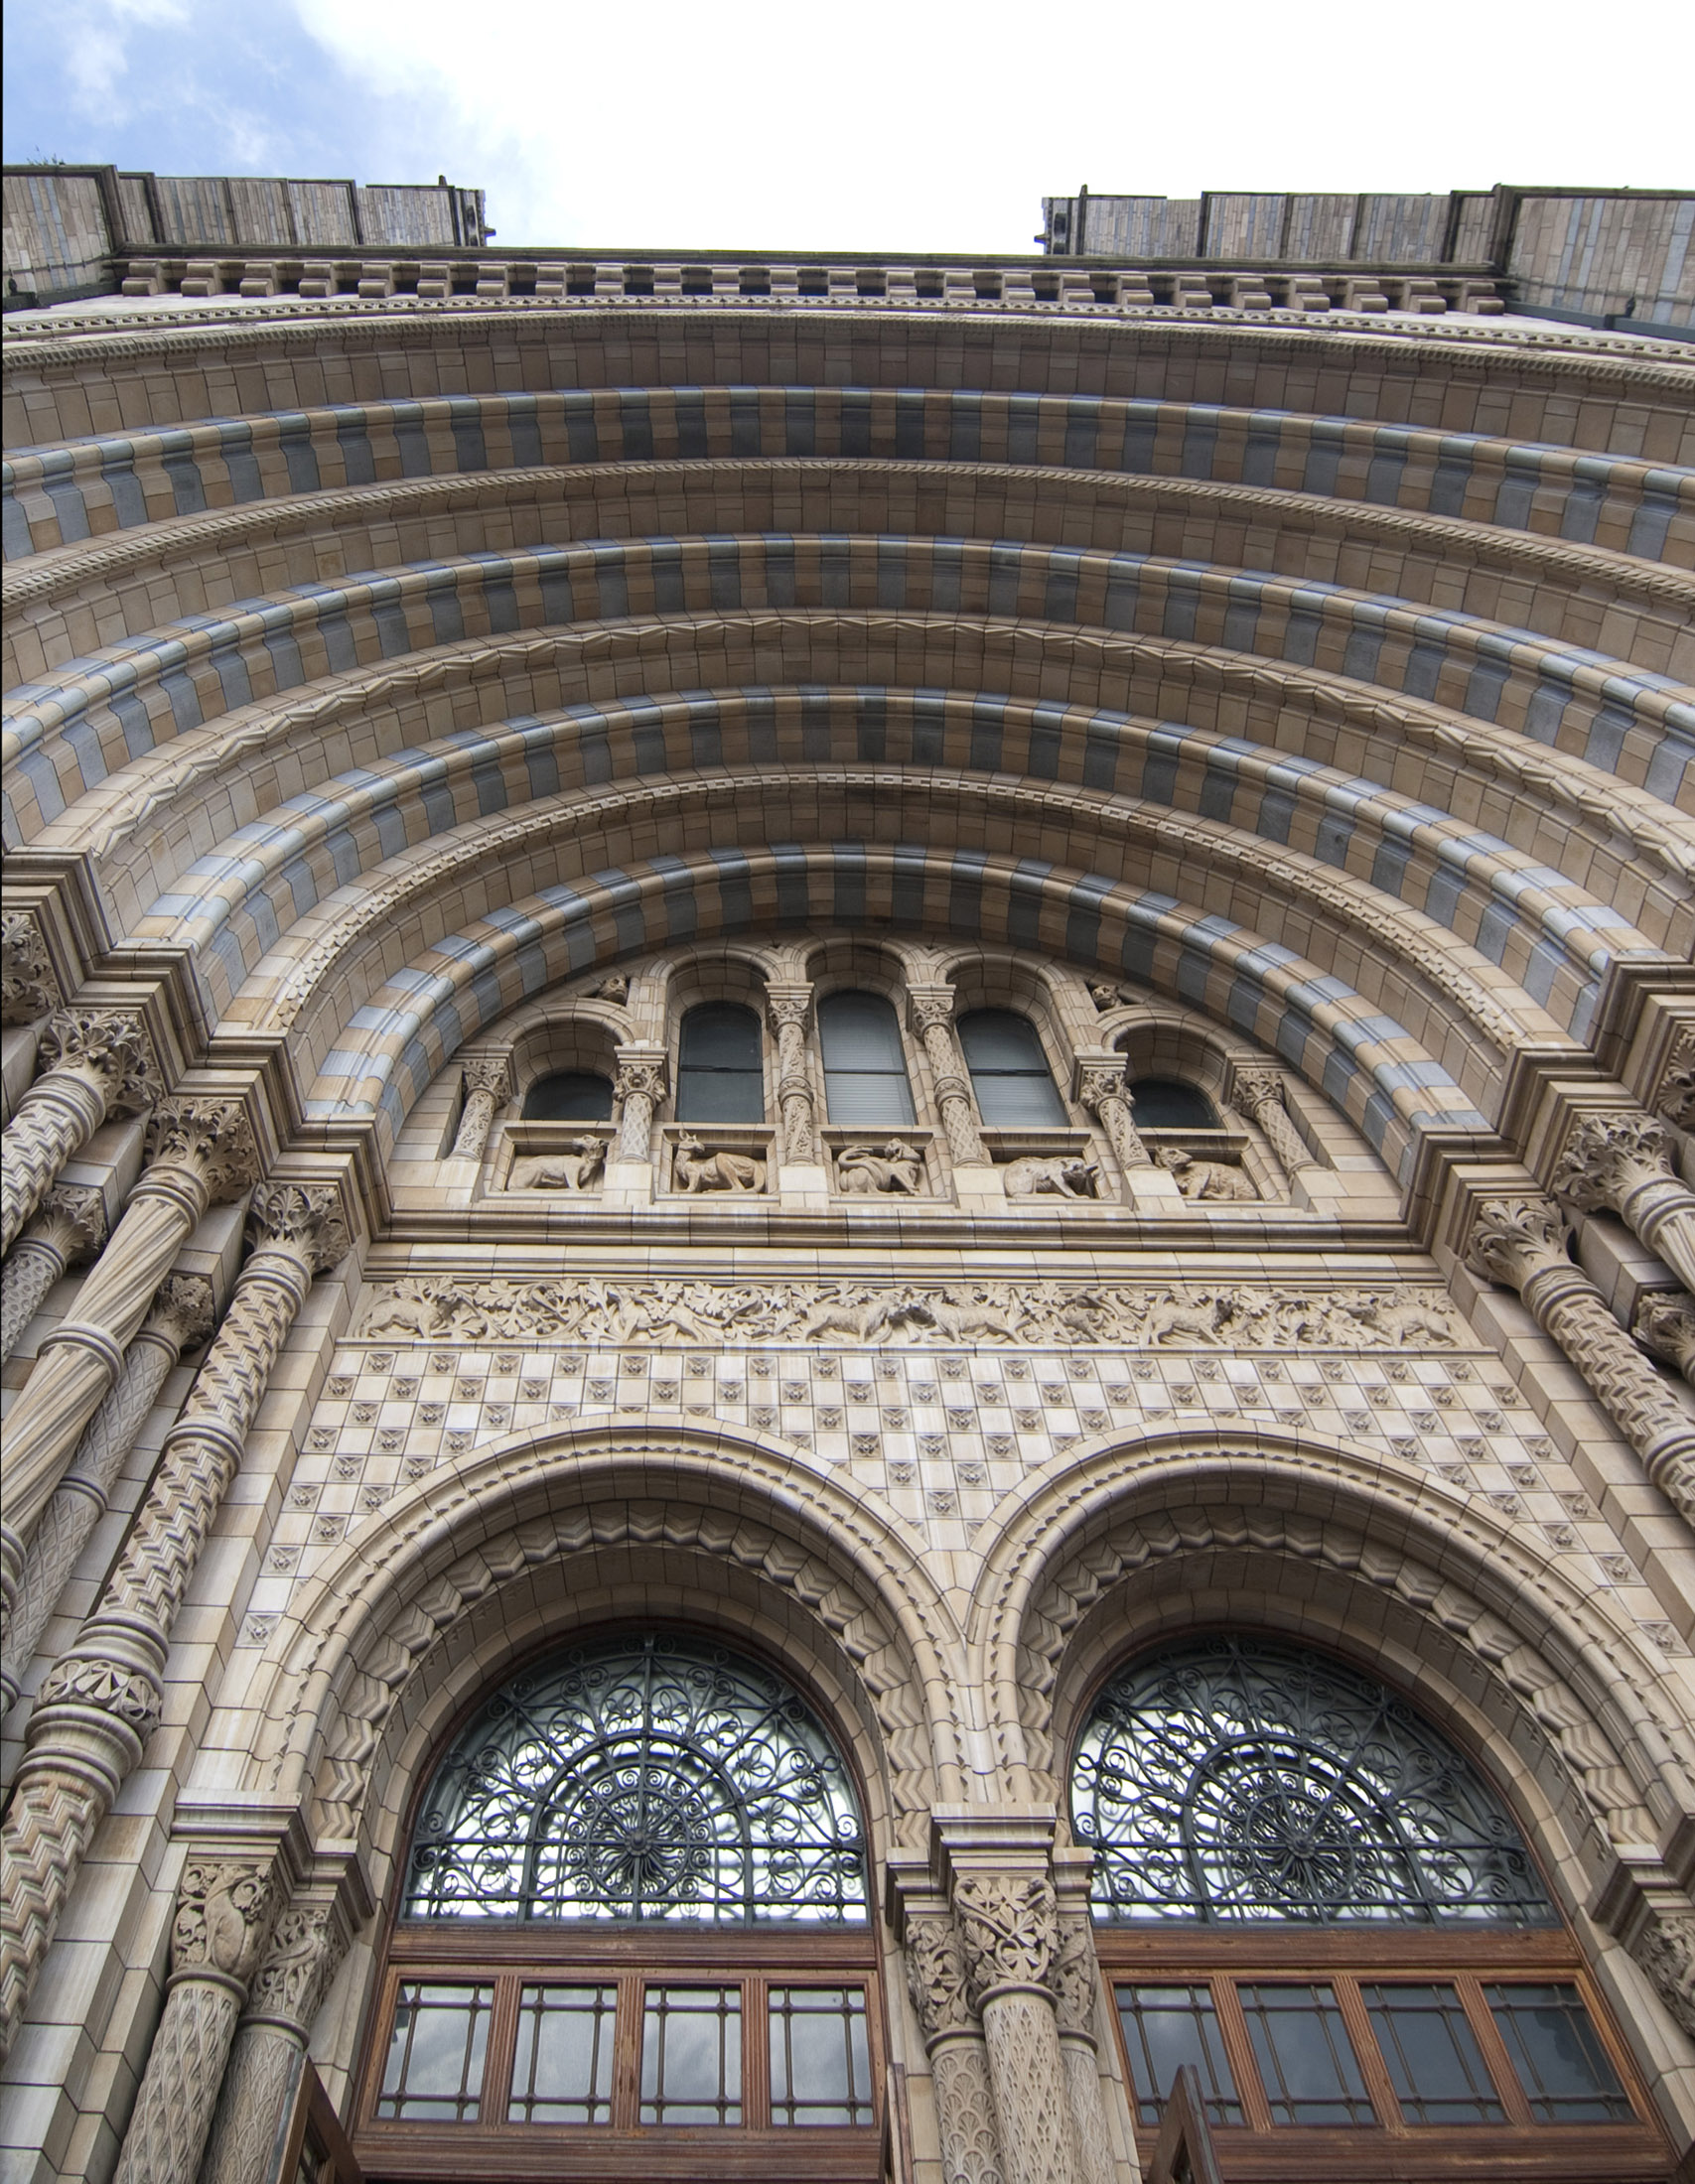 grand entrance to londons natural history museum on the Cromwell road